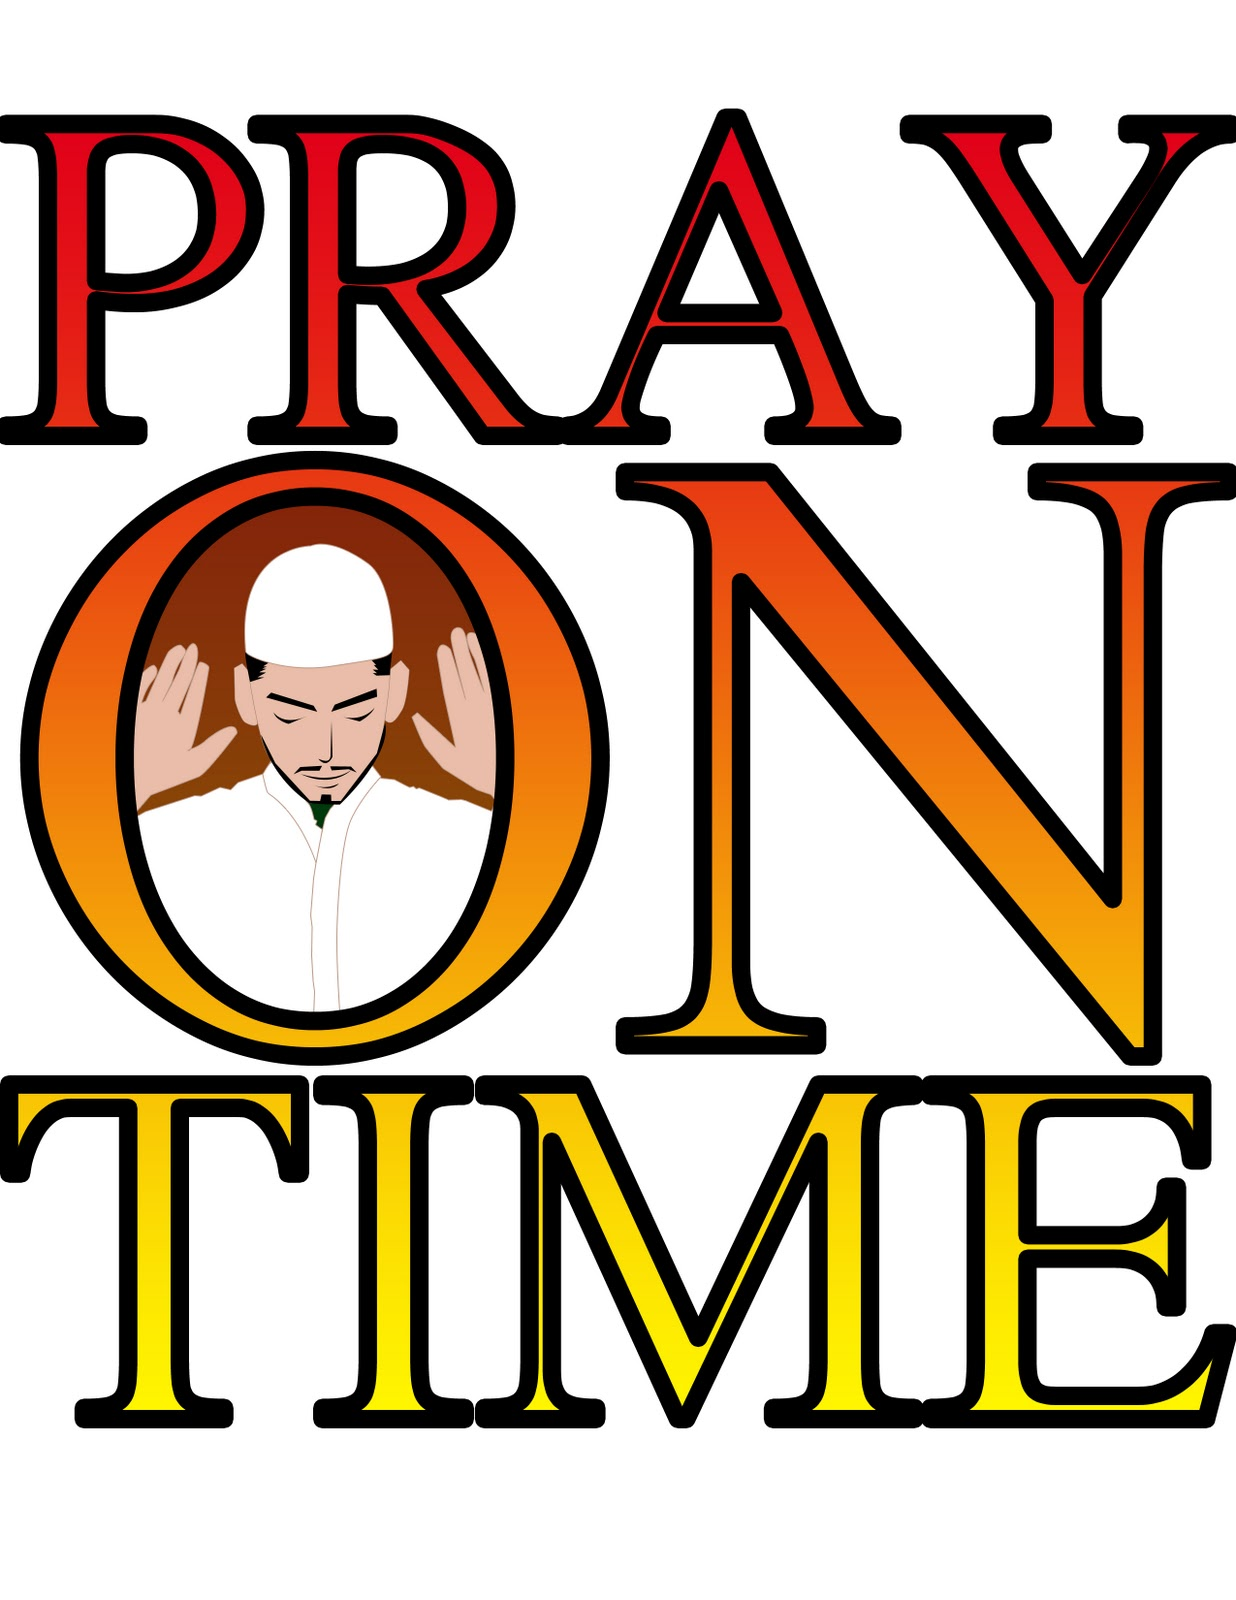 http://3.bp.blogspot.com/-OPjLSnGG6WQ/Tyq9X9iS-HI/AAAAAAAAAno/q7l5MD5e3zI/s1600/pray_on_time_by_shsn-d41gfbs.jpg